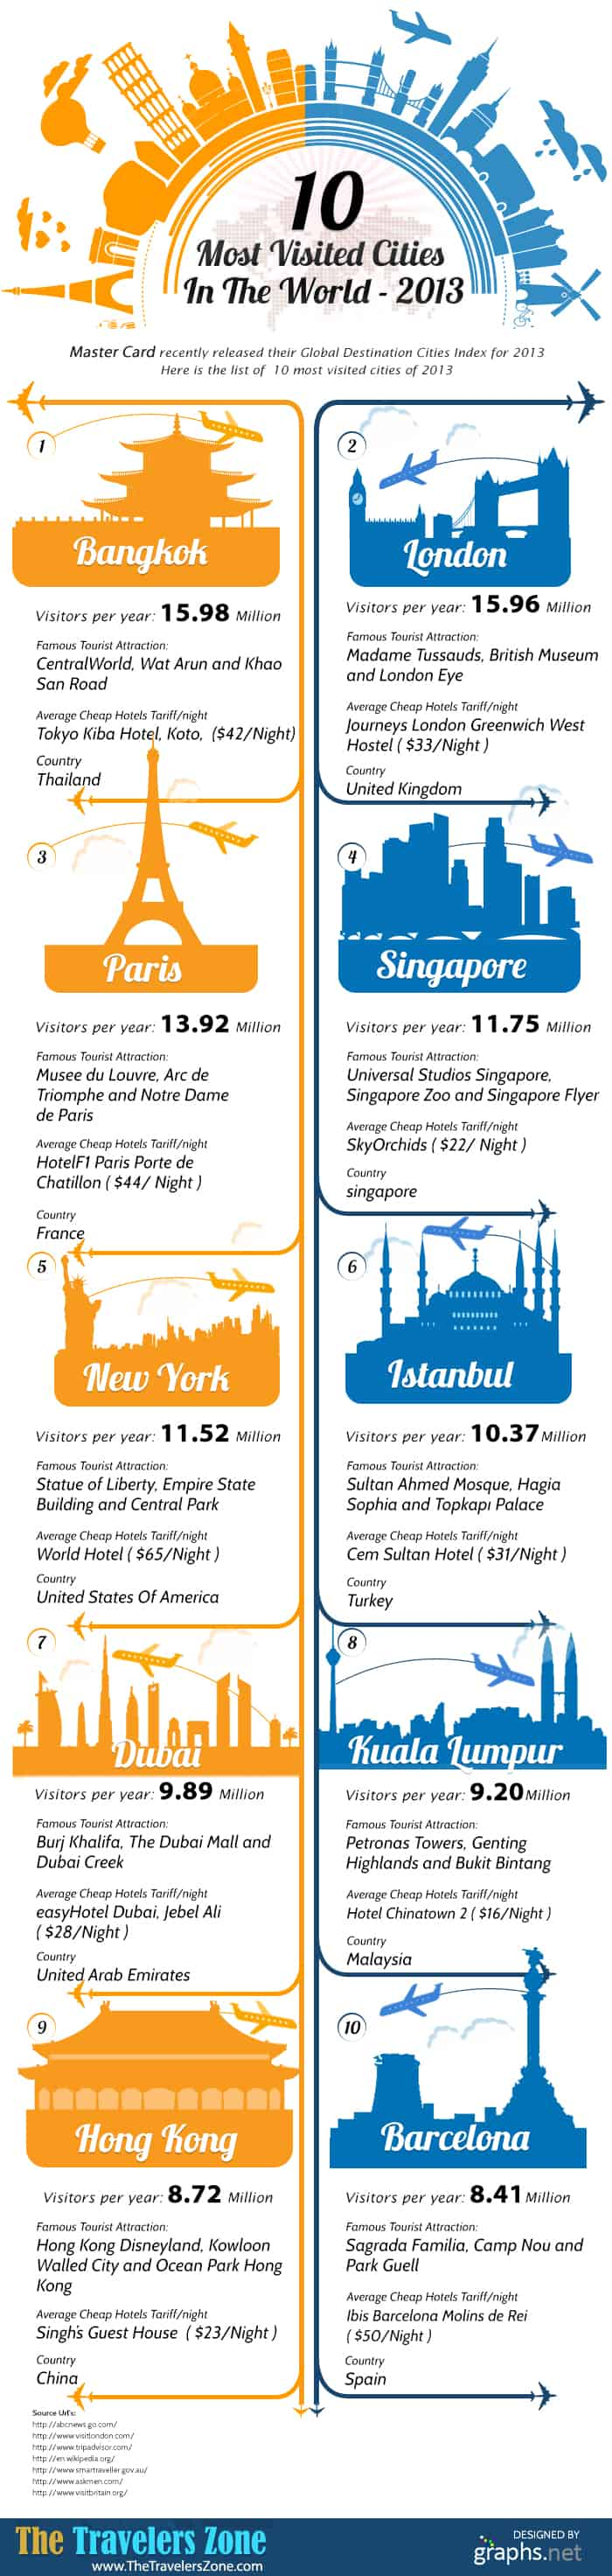 Most Visited Cities Infographic